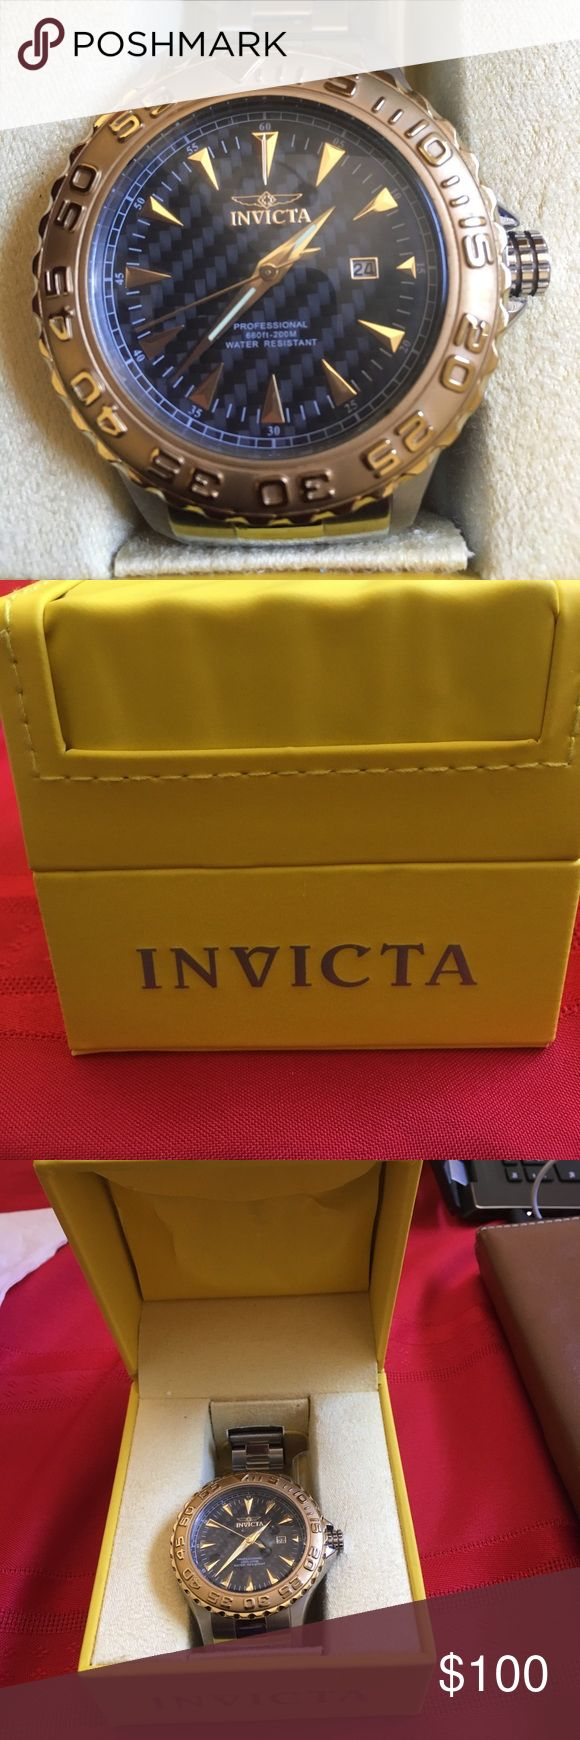 Invicta Men's Watch This is an Invicta Men's Pro Diver Watch and is in great condition. Invicta Accessories Watches